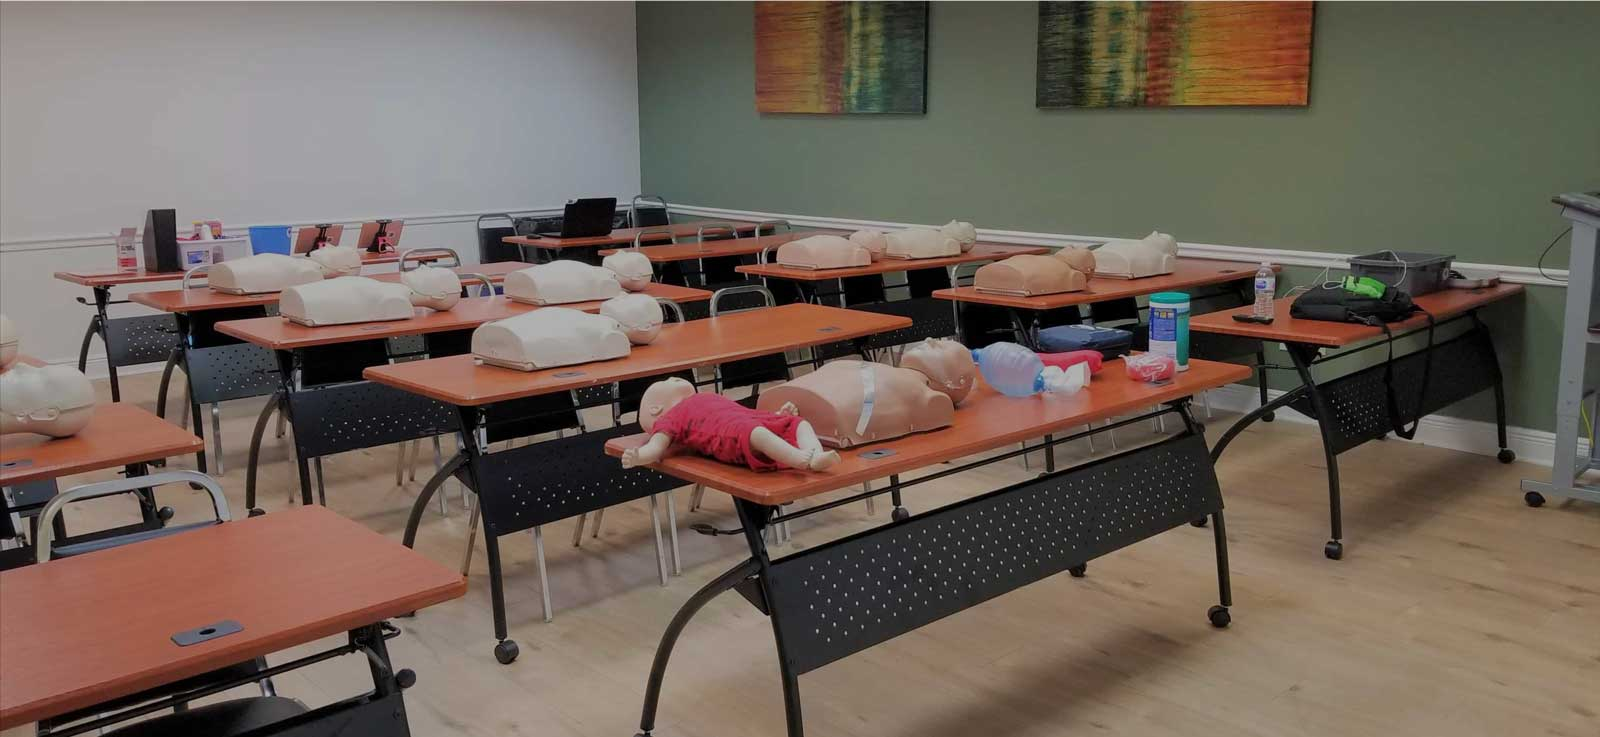 Miami Cpr Certifications Bls First Aid Aed Acls Pals Classes